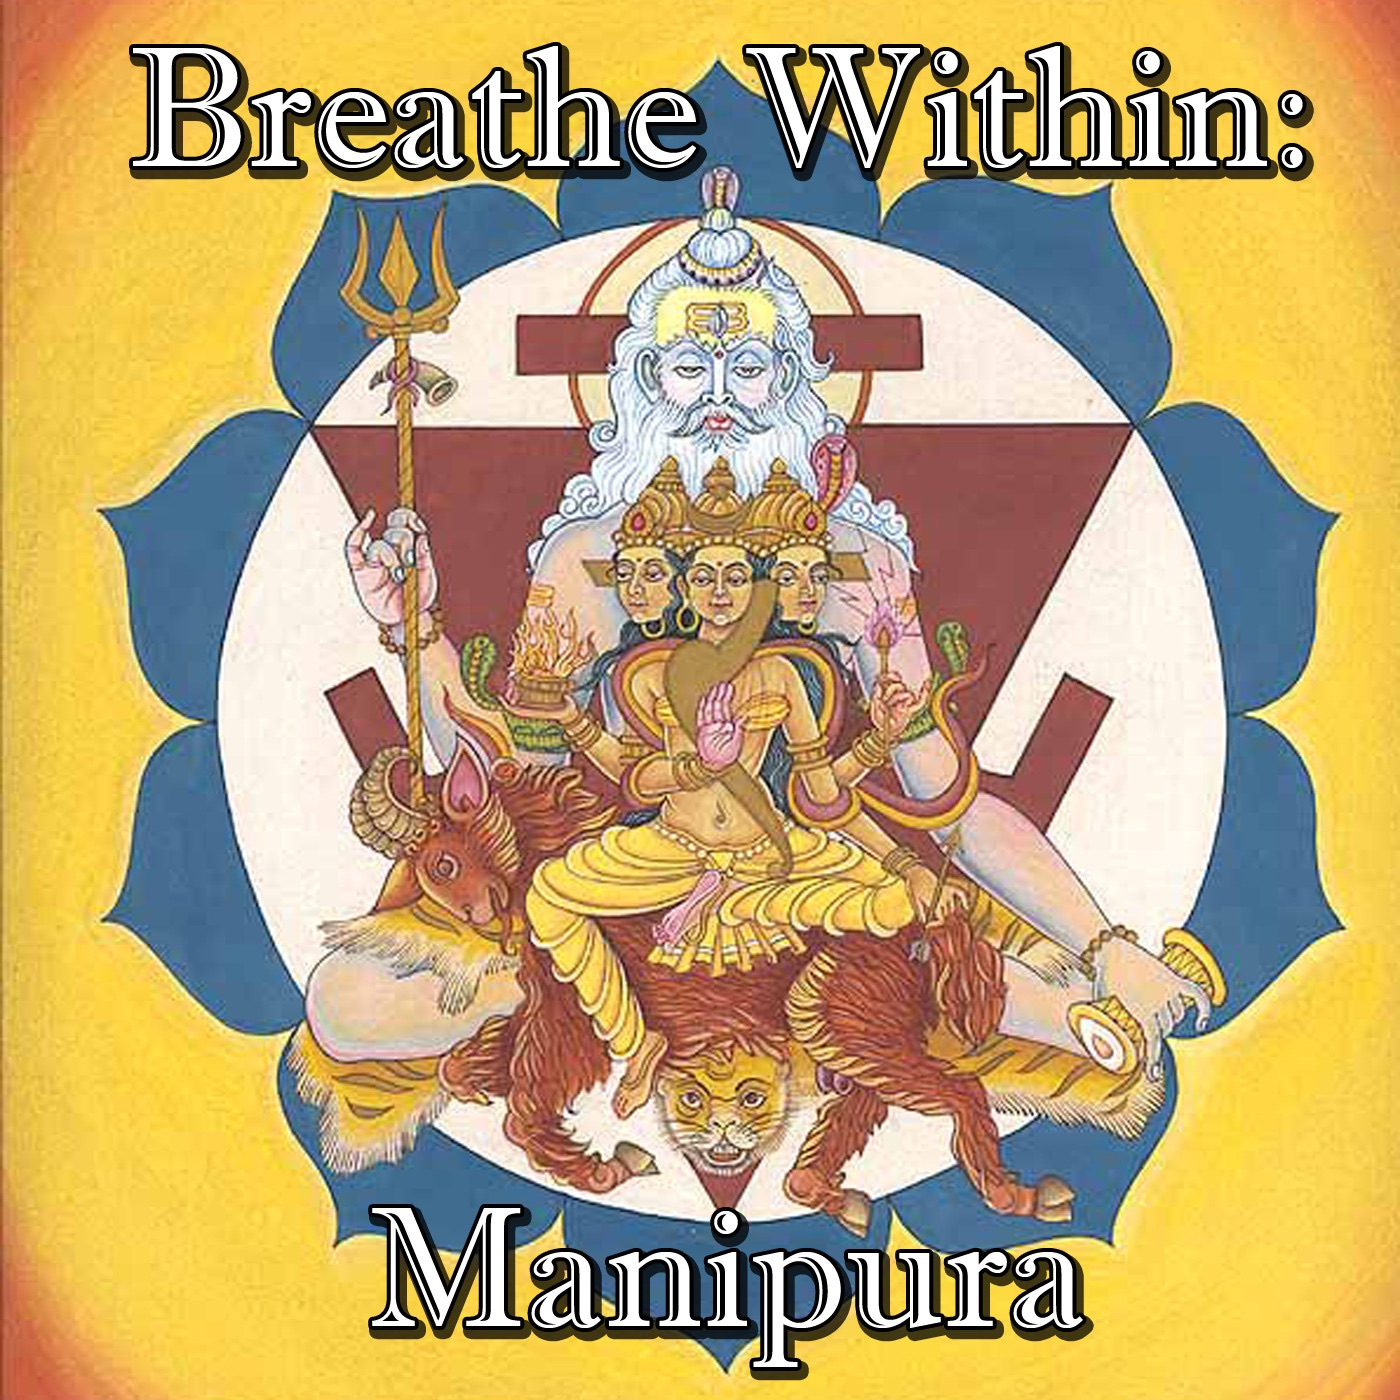 Breathe Within: Manipura